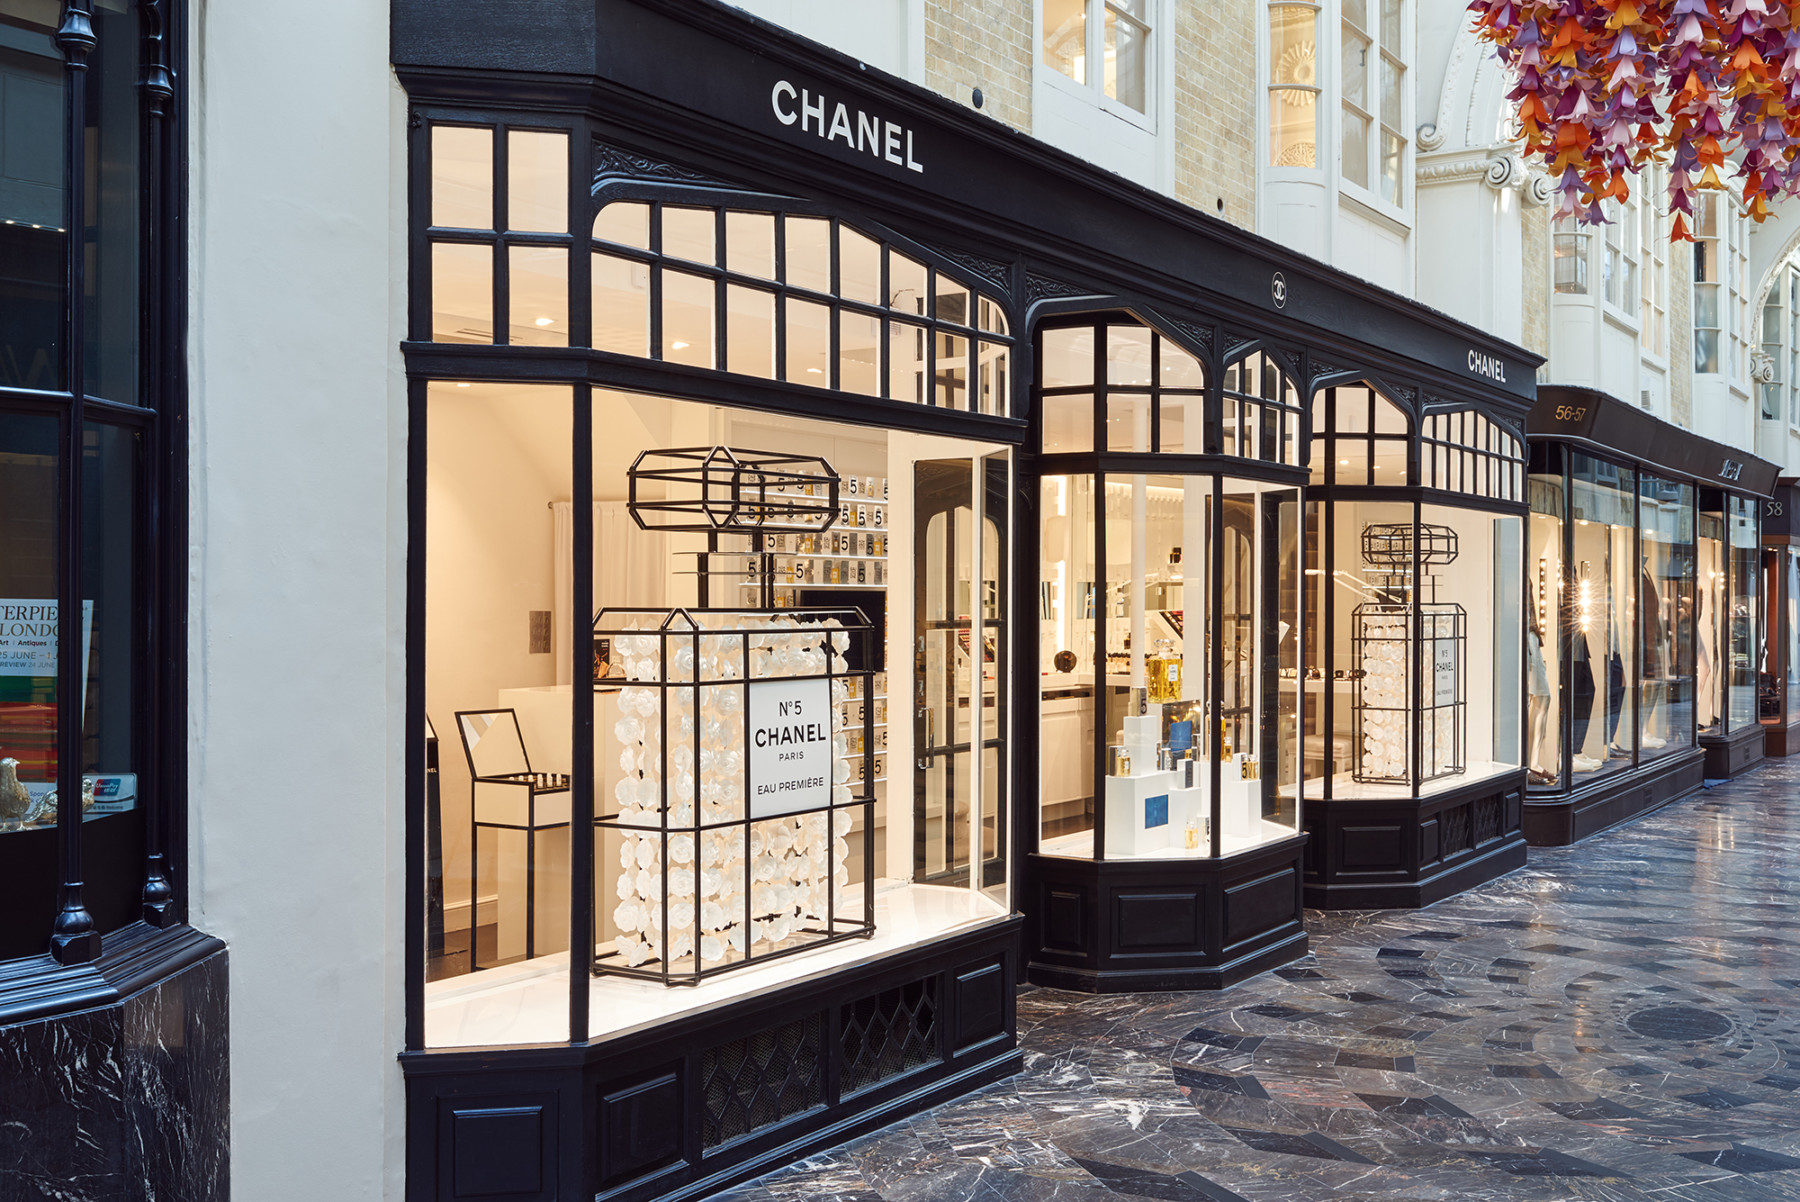 Burlington-Arcade-Piccadilly-London-Royal-Academy-Jamie-Fobert-Architects--British-stone-floor-marble-mosaic-shop-front